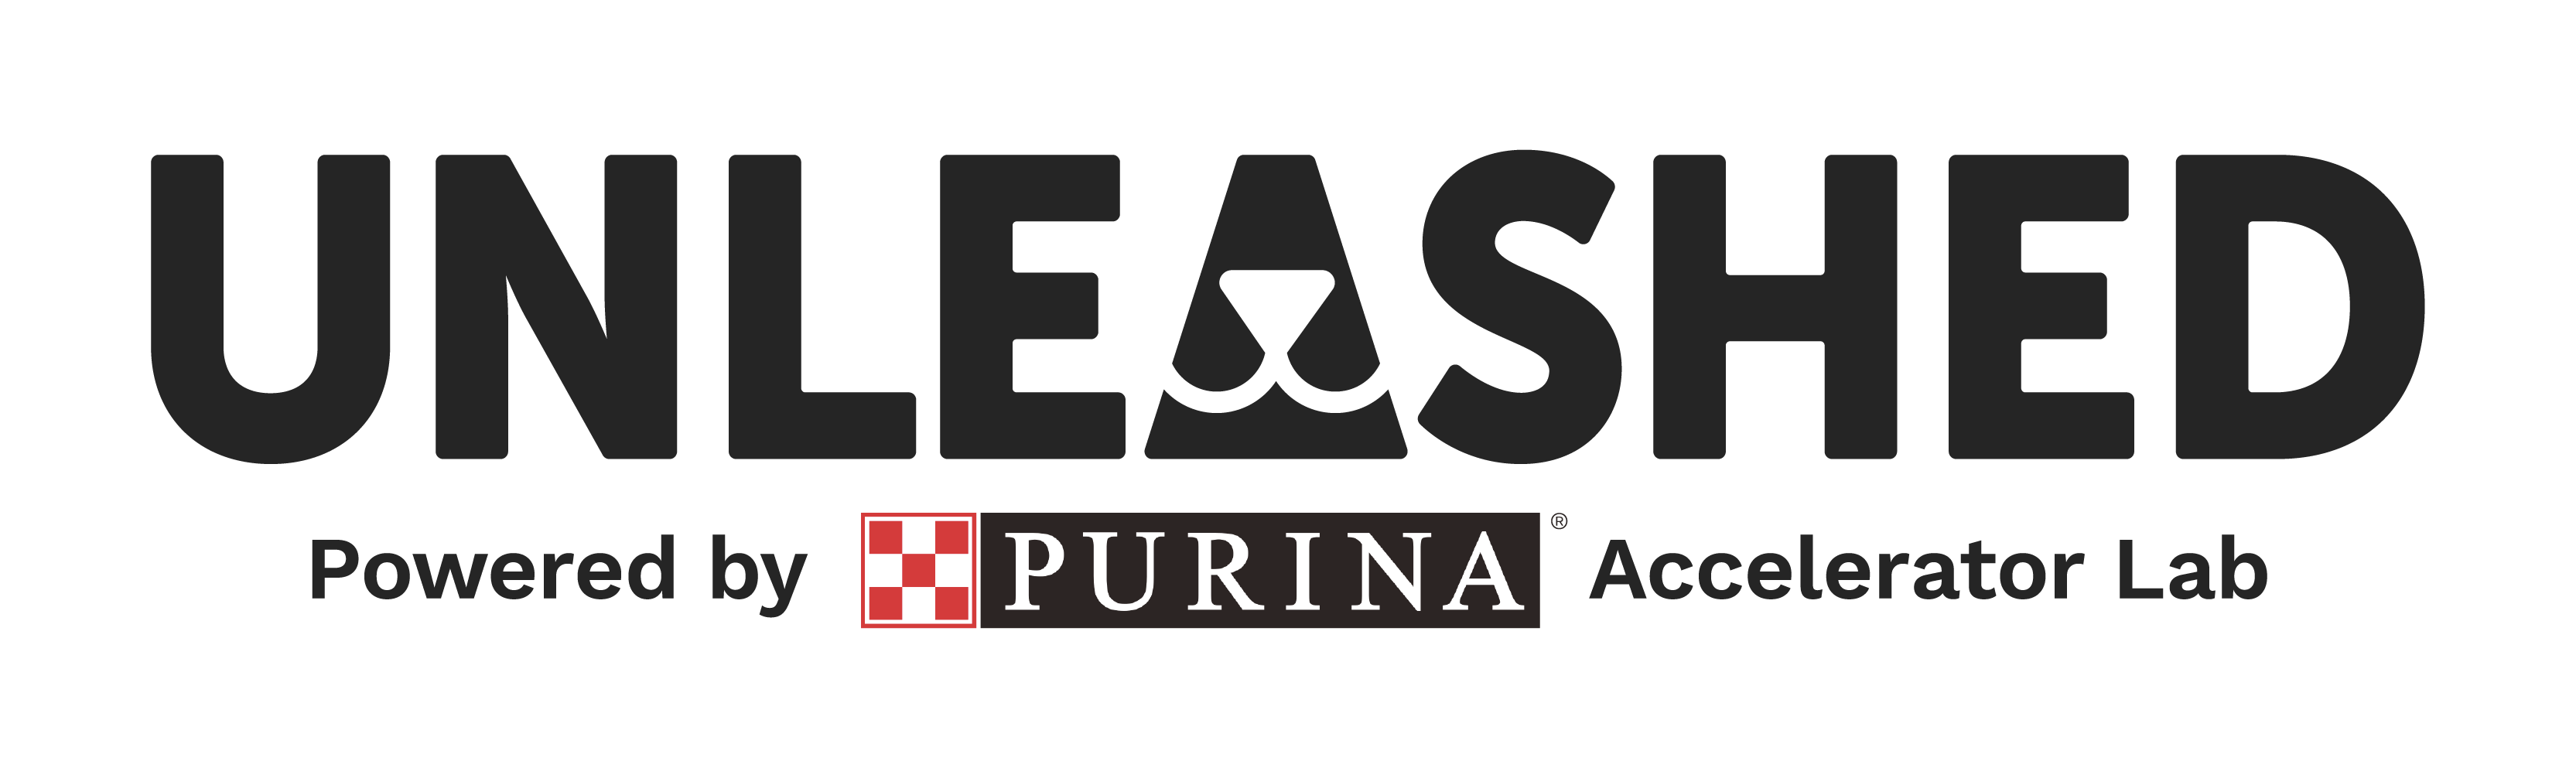 Unleashed: Powered by Purina Accelerator Lab's logo